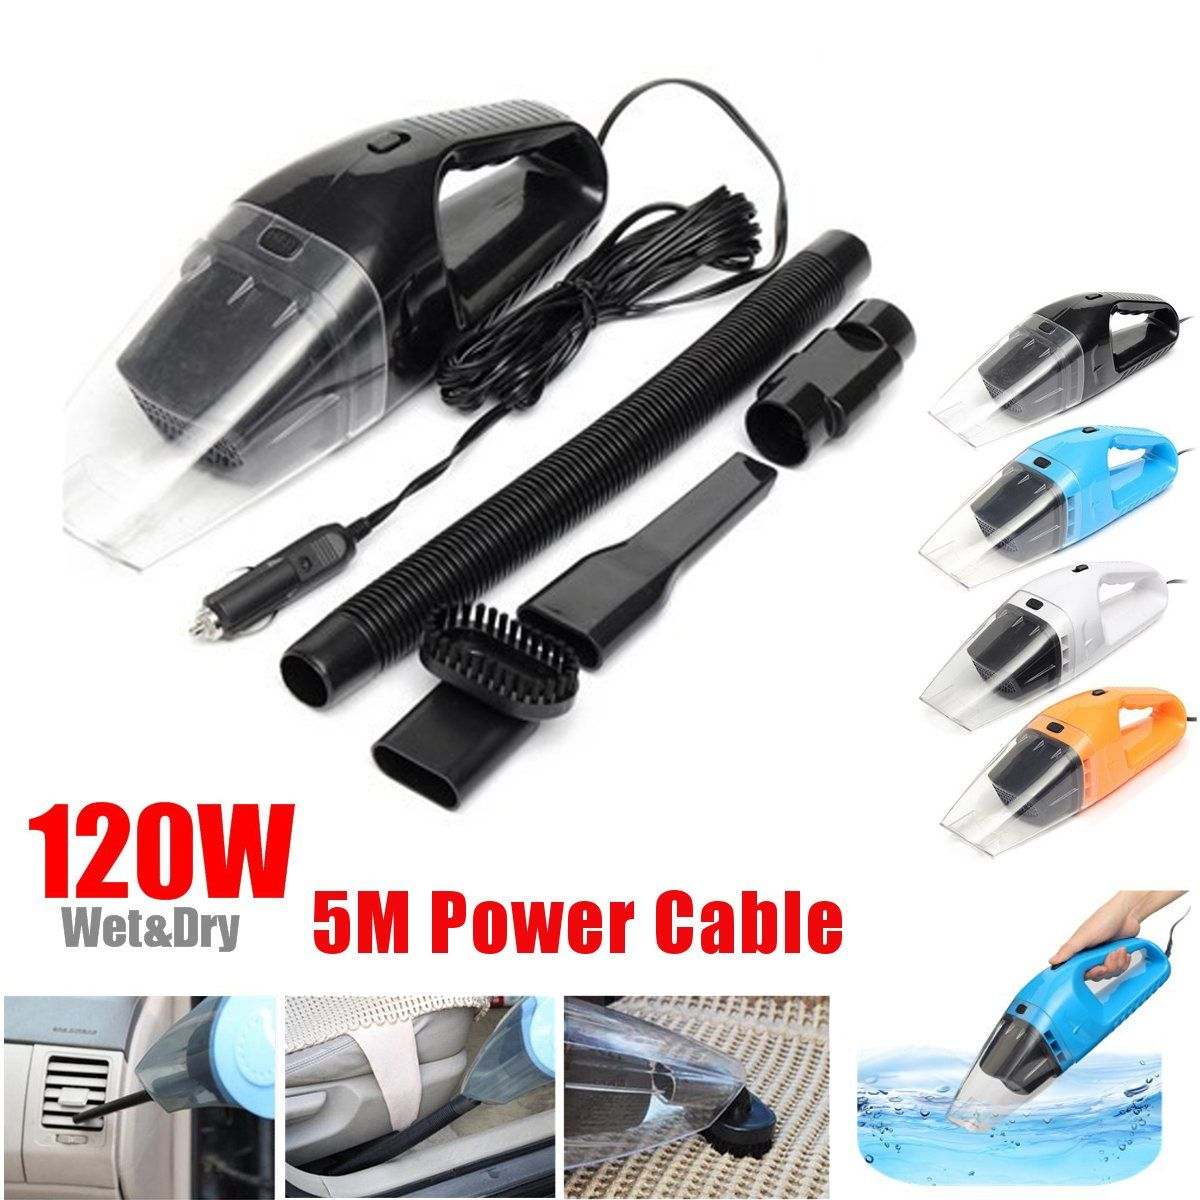 120W Portable Super Suction Handheld Vacuum Dirt Cleaner Wet & Dry Vacuum Cleaner For Vehicle Car Handheld Home Office